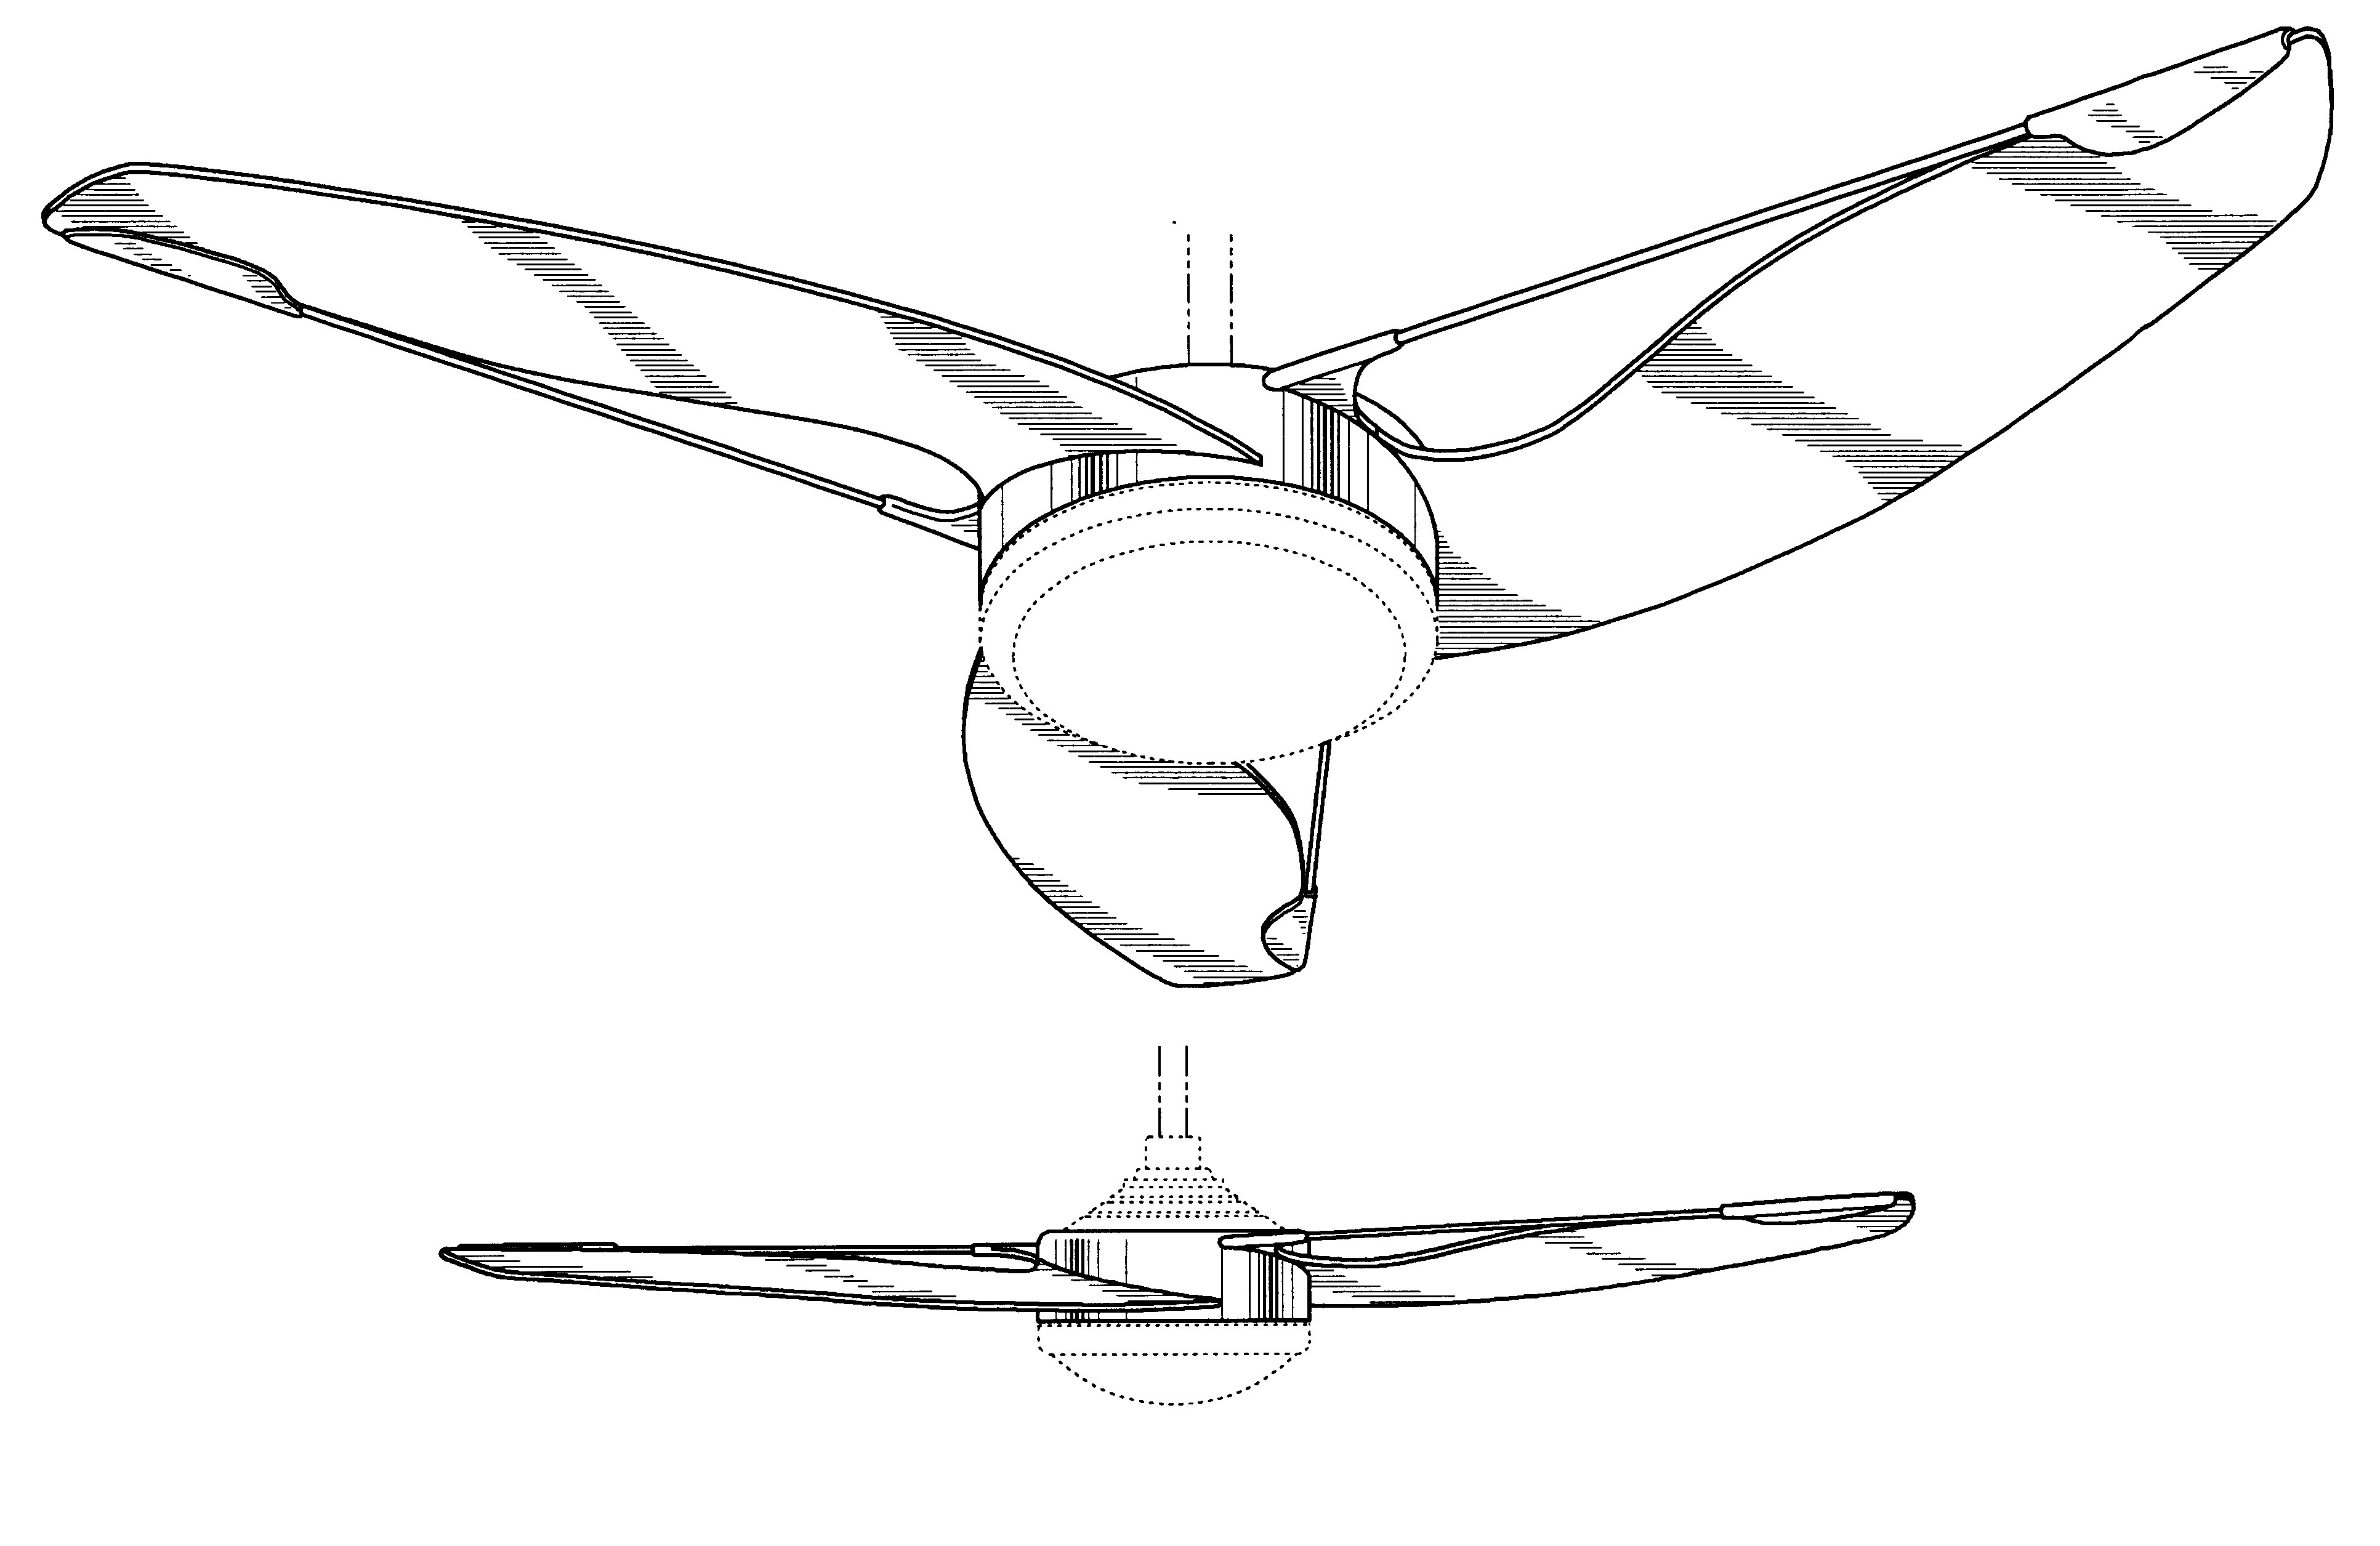 Fan Blade Drawing : Patent usd ceiling fan blade assembly google patents